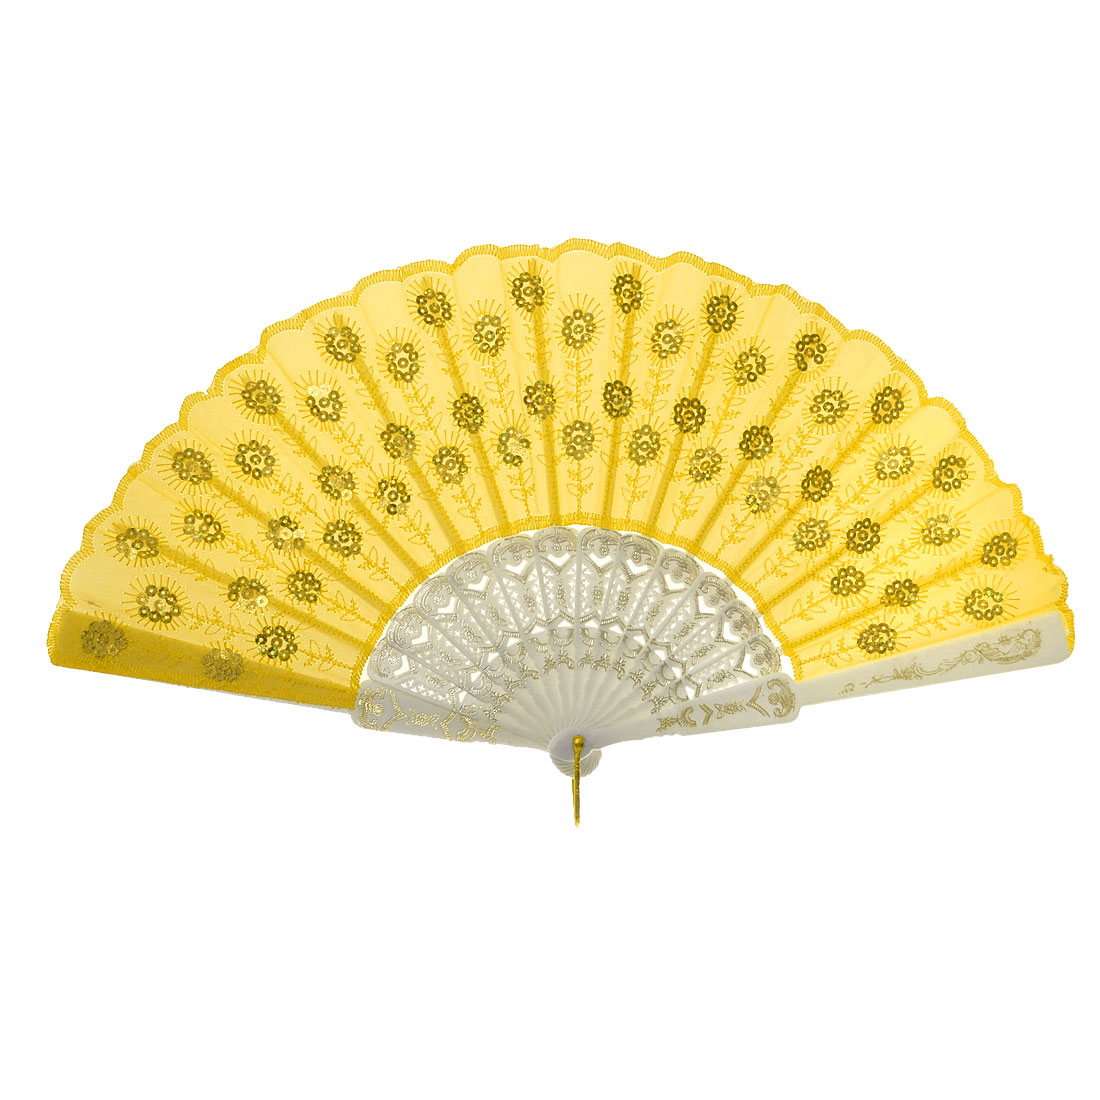 Yellow Peacock Style Cloth Gold Tone Sequin Embroider Hand Fan